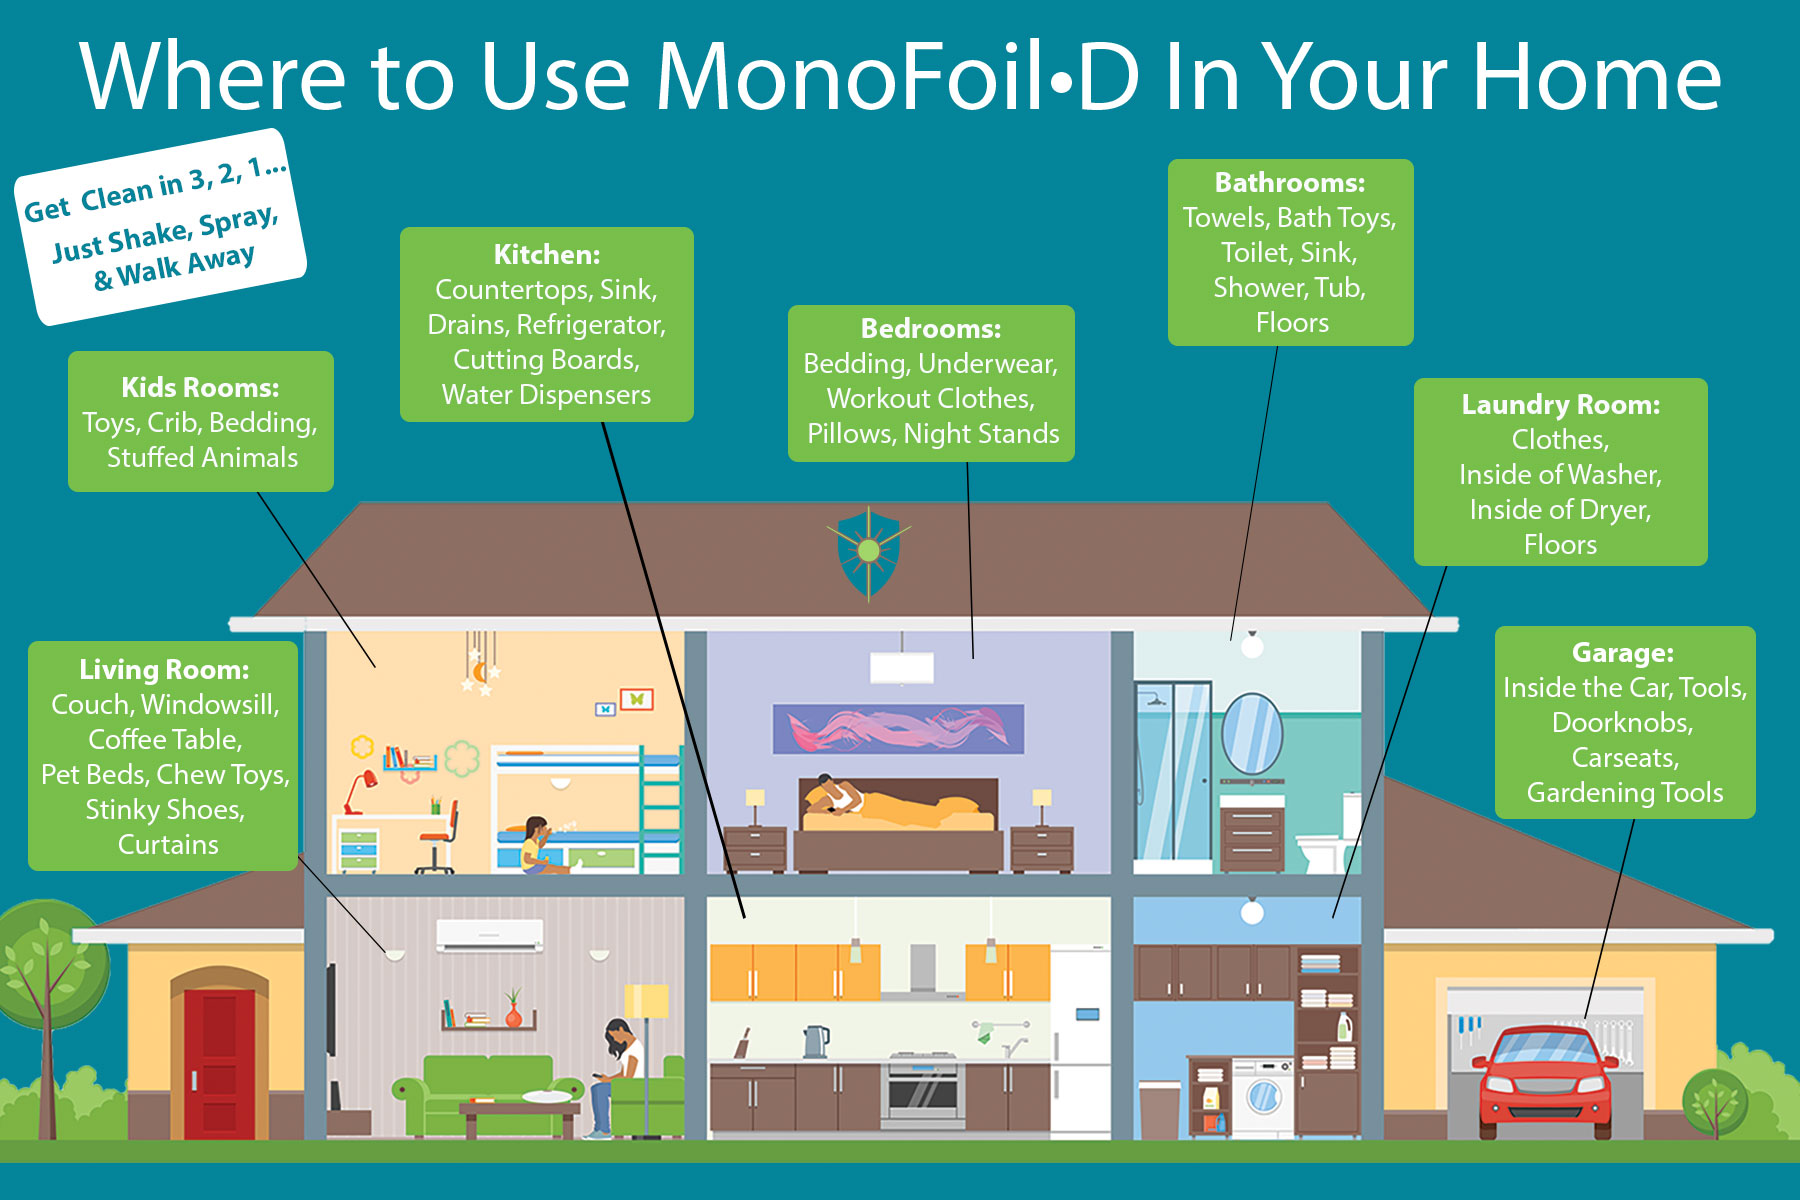 Where-to-Use-MonoFoil-Infographic.jpg